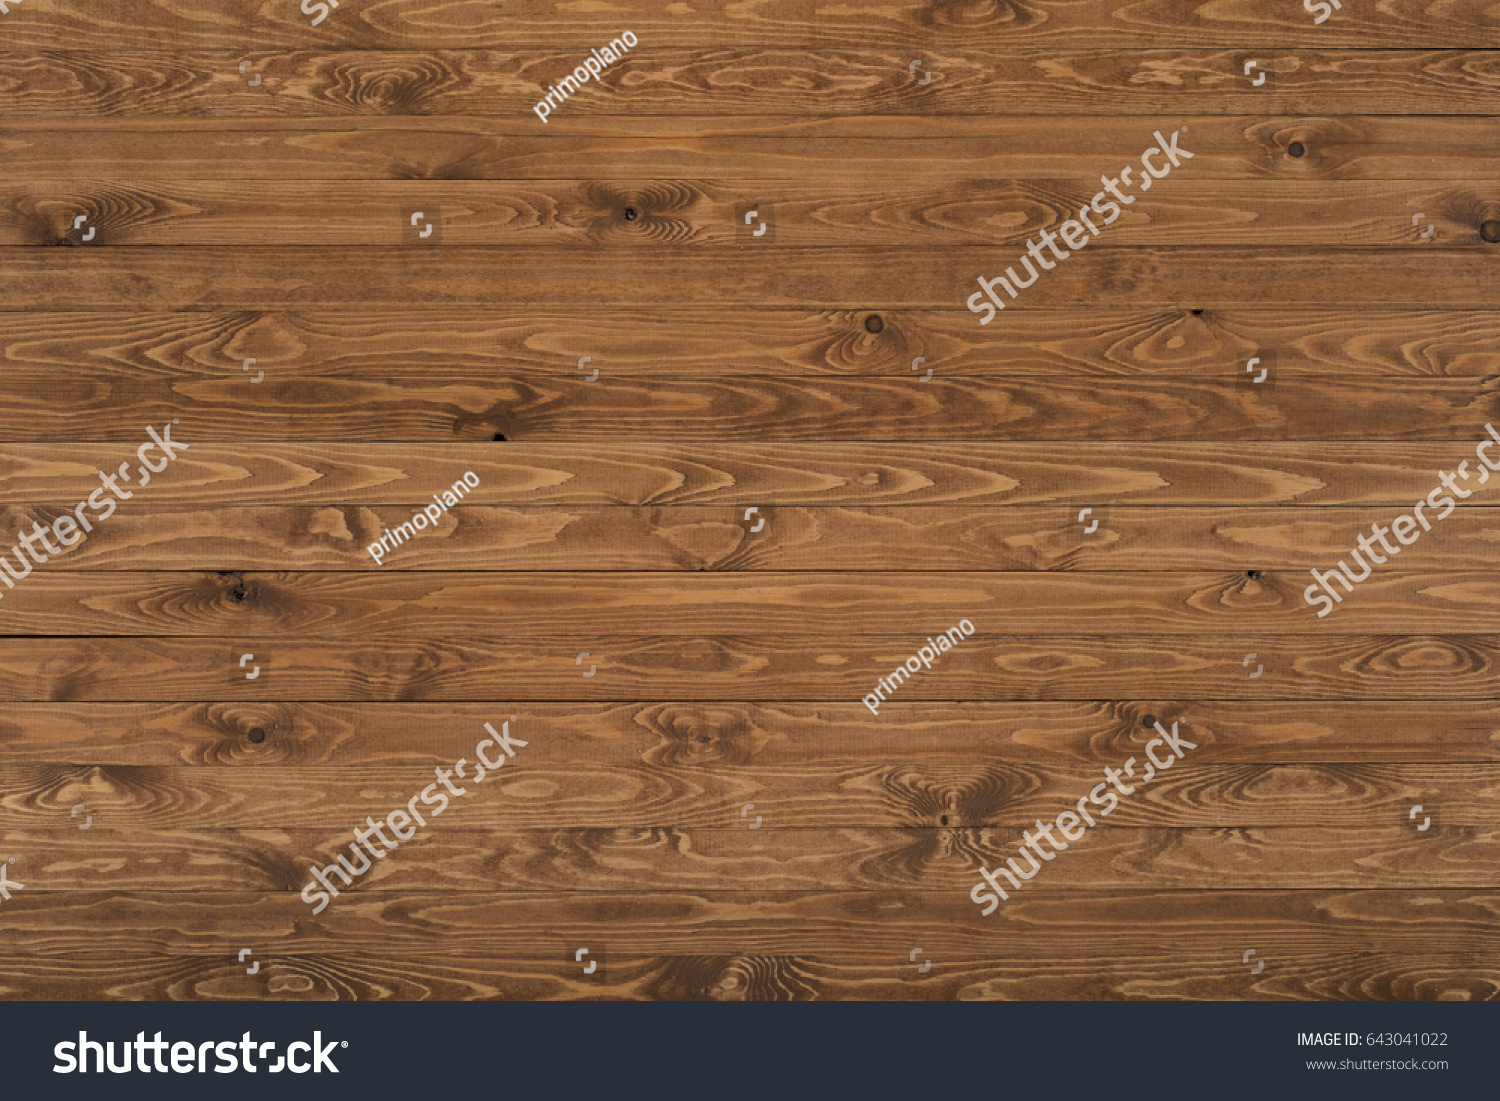 Wood table top texture - Dark Wood Texture Background Surface With Old Natural Pattern Grunge Surface Rustic Wooden Table Top